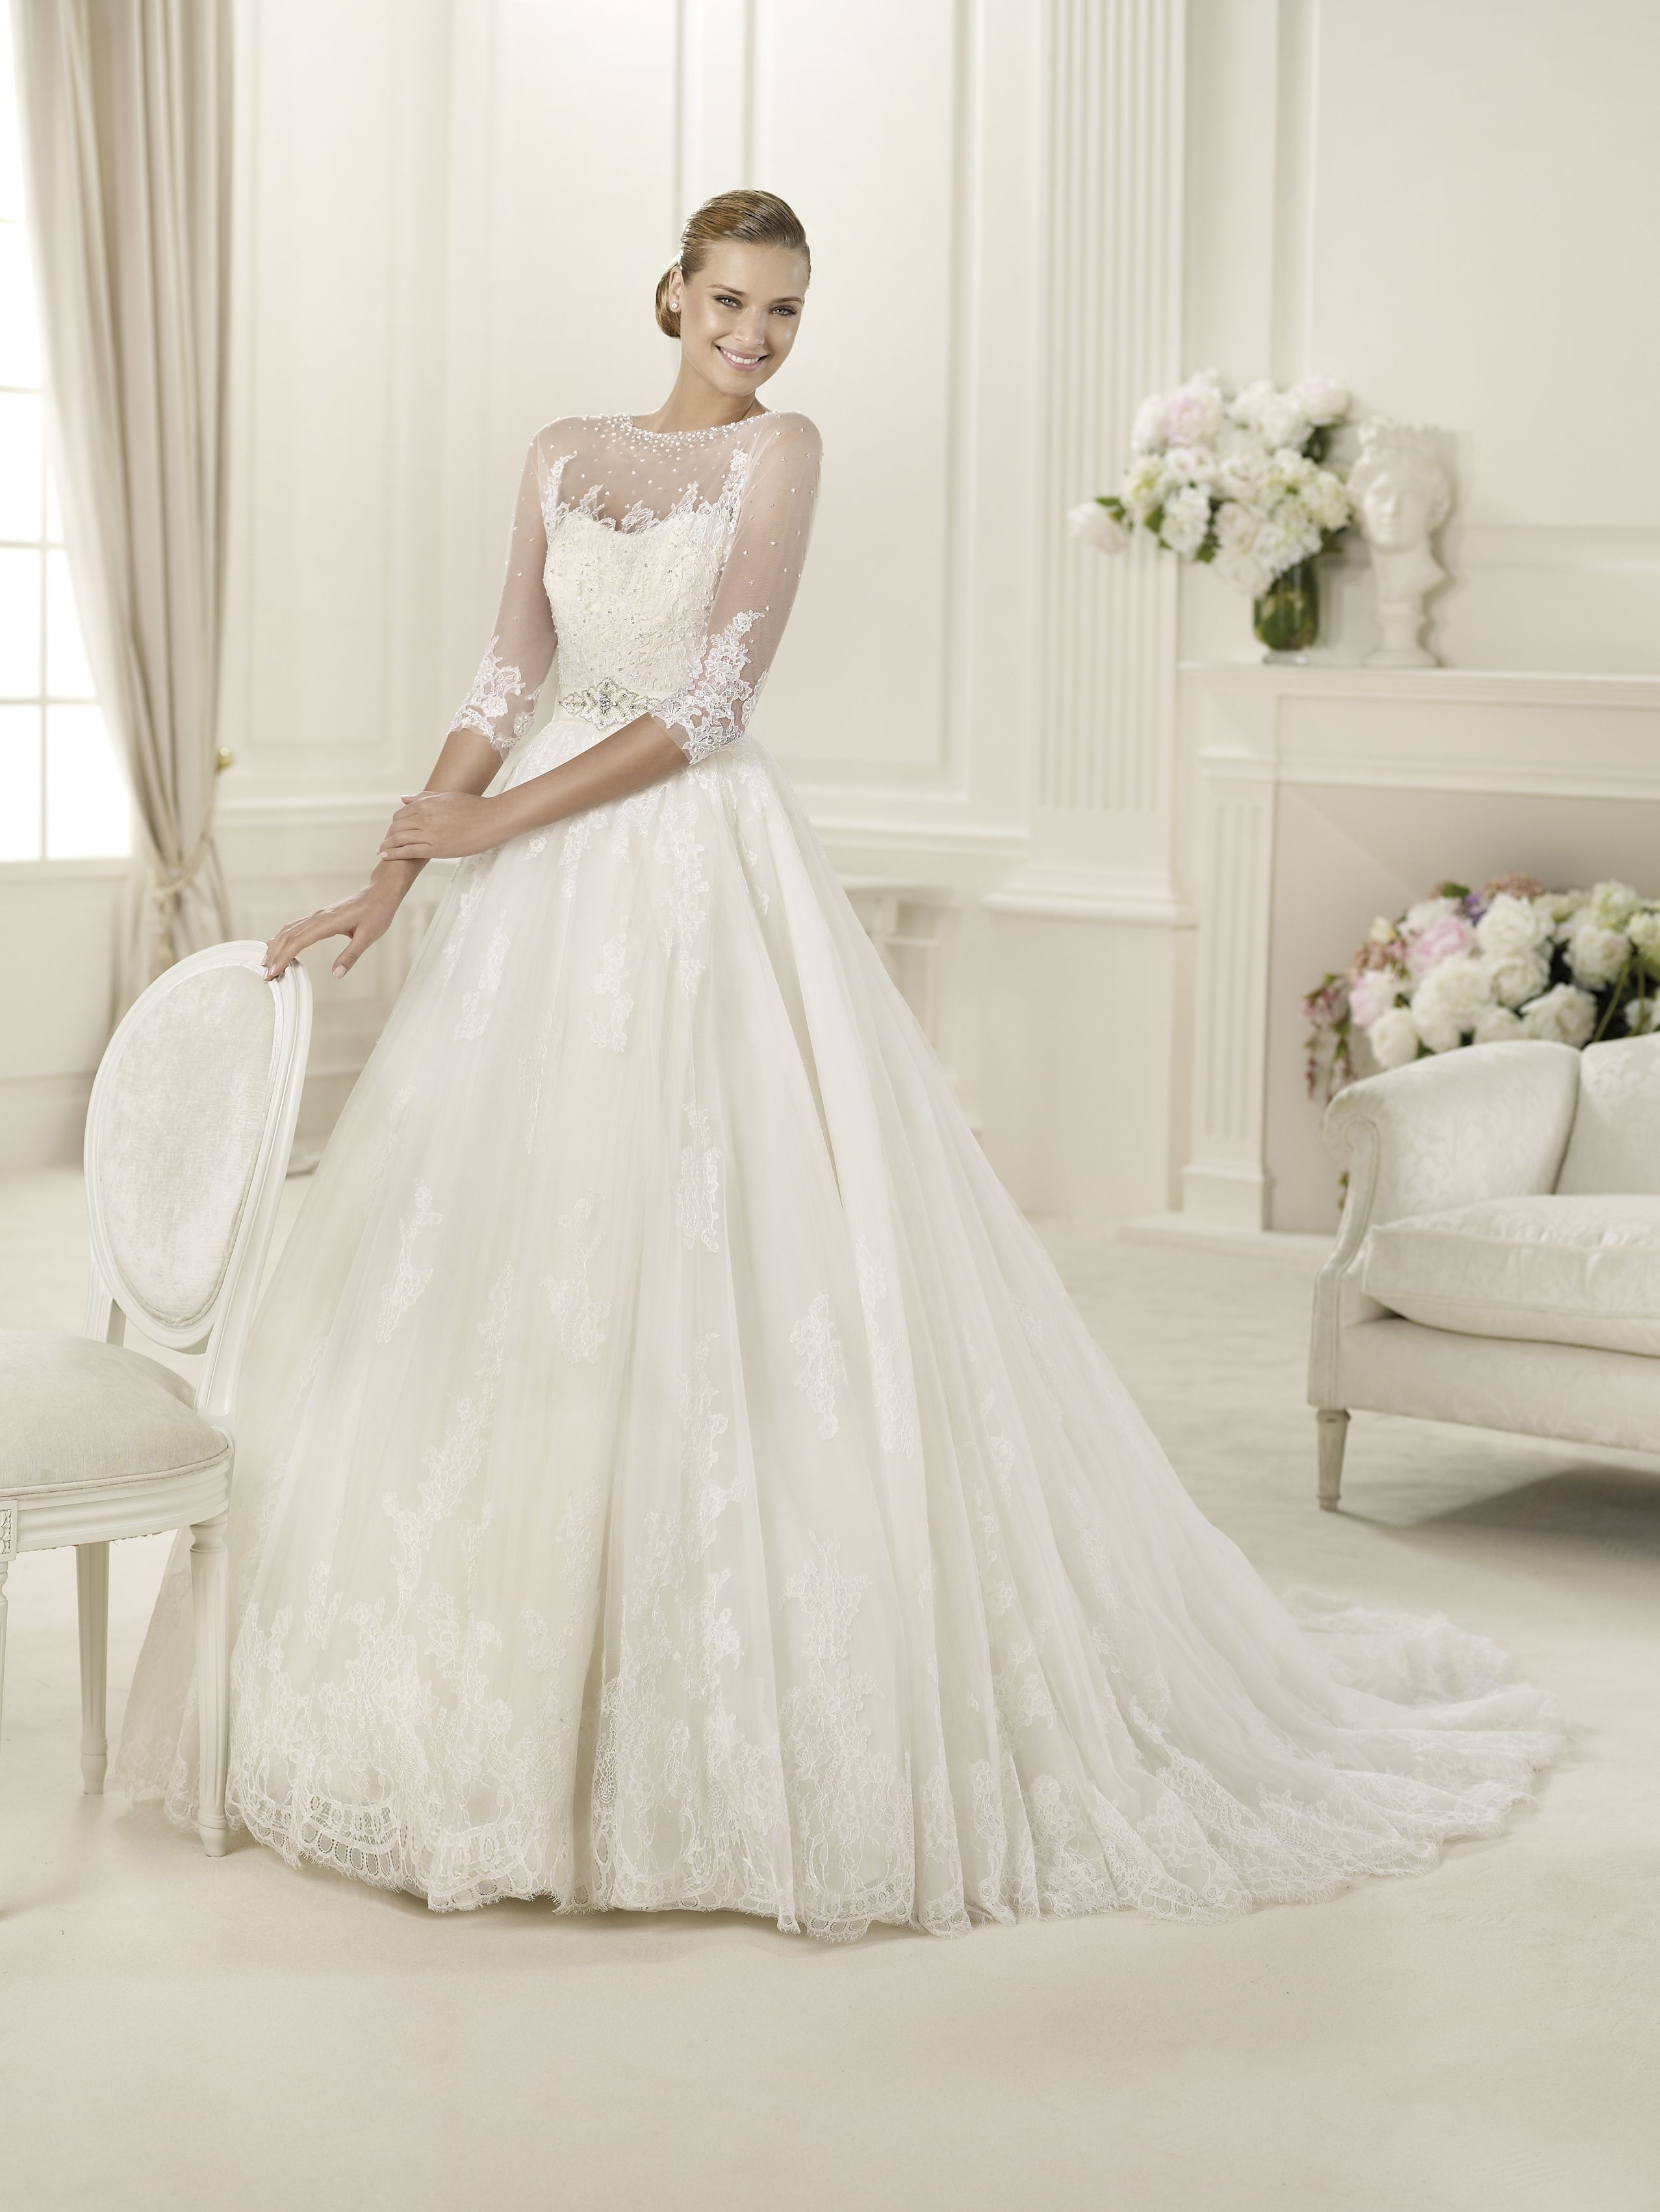 Dauco pronovias weddingdress bridalgown weddinggown pronovias dauco pronovias bridal gowns i am totally in love with everything in this dress ombrellifo Image collections